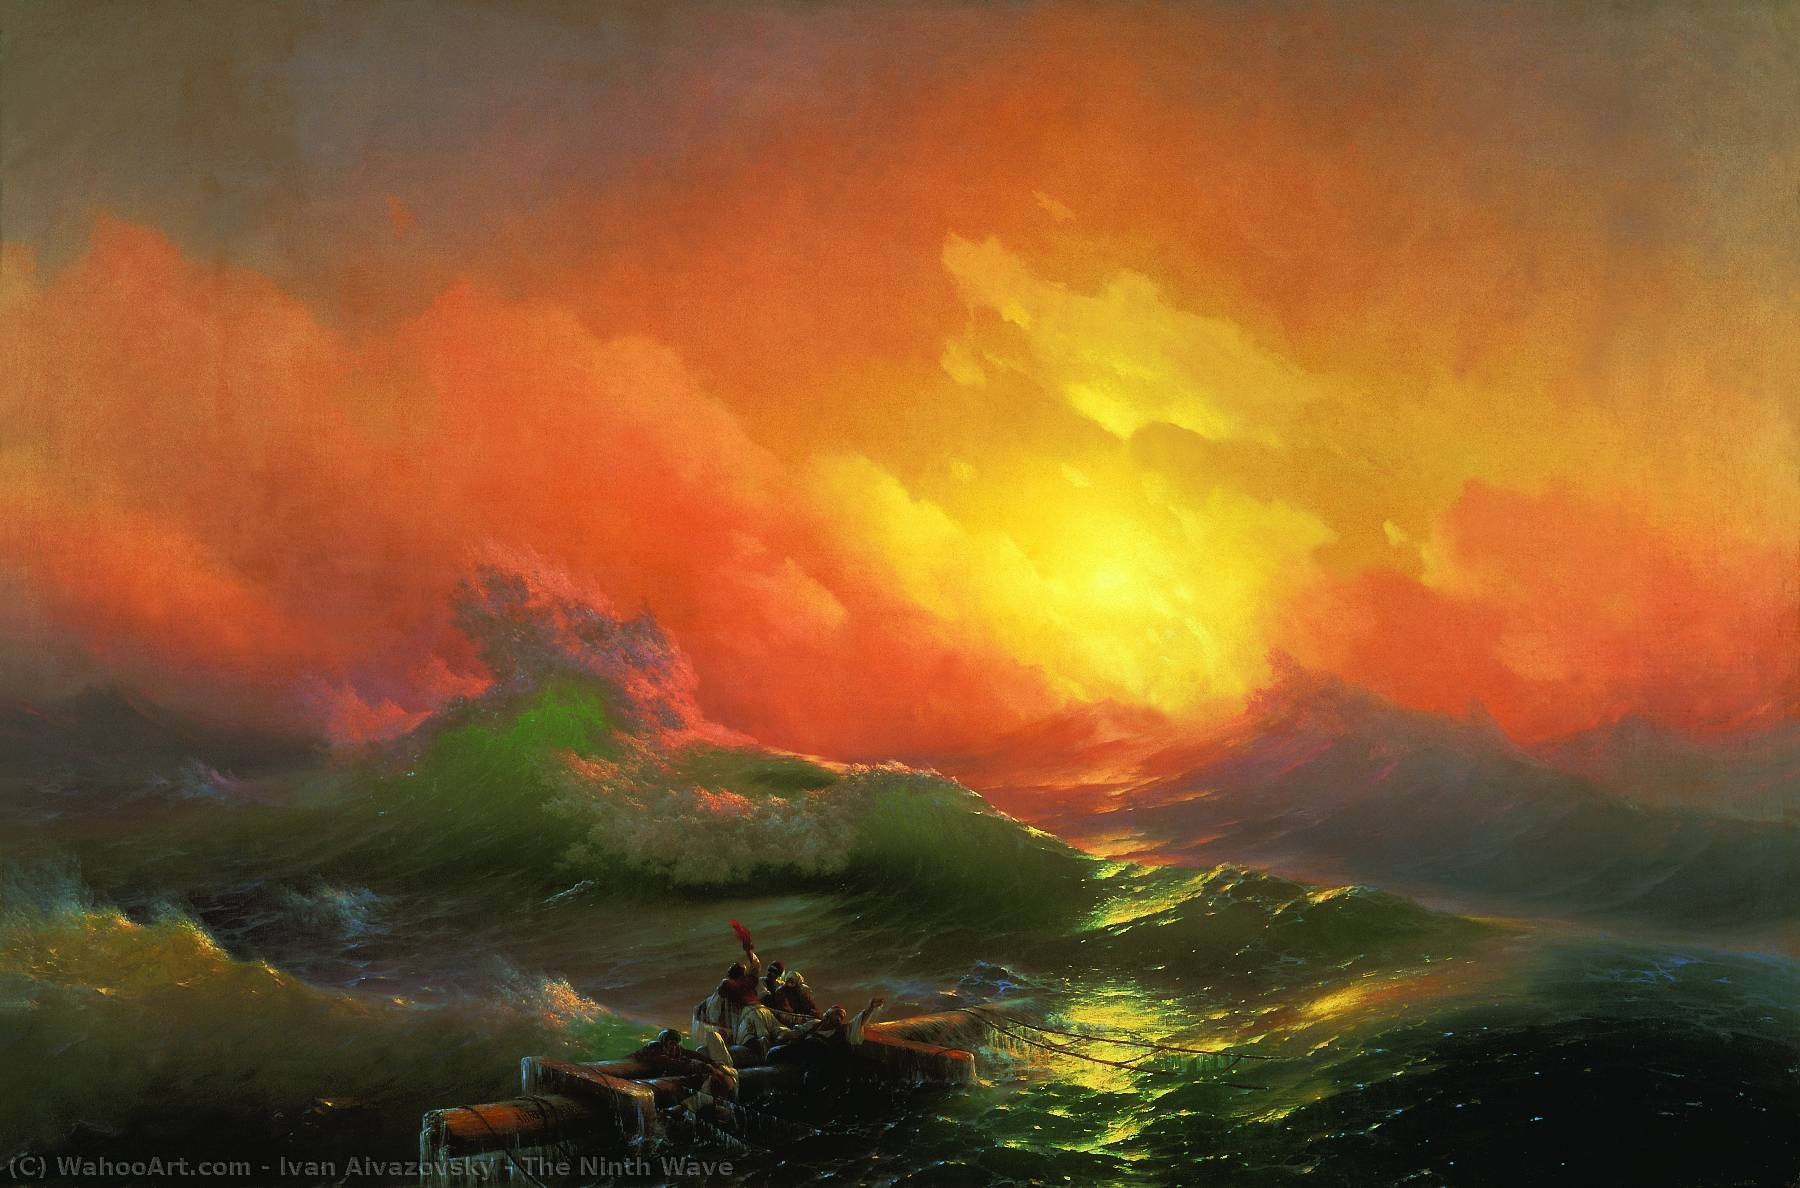 famous painting Il Ninth Wave of Ivan Aivazovsky